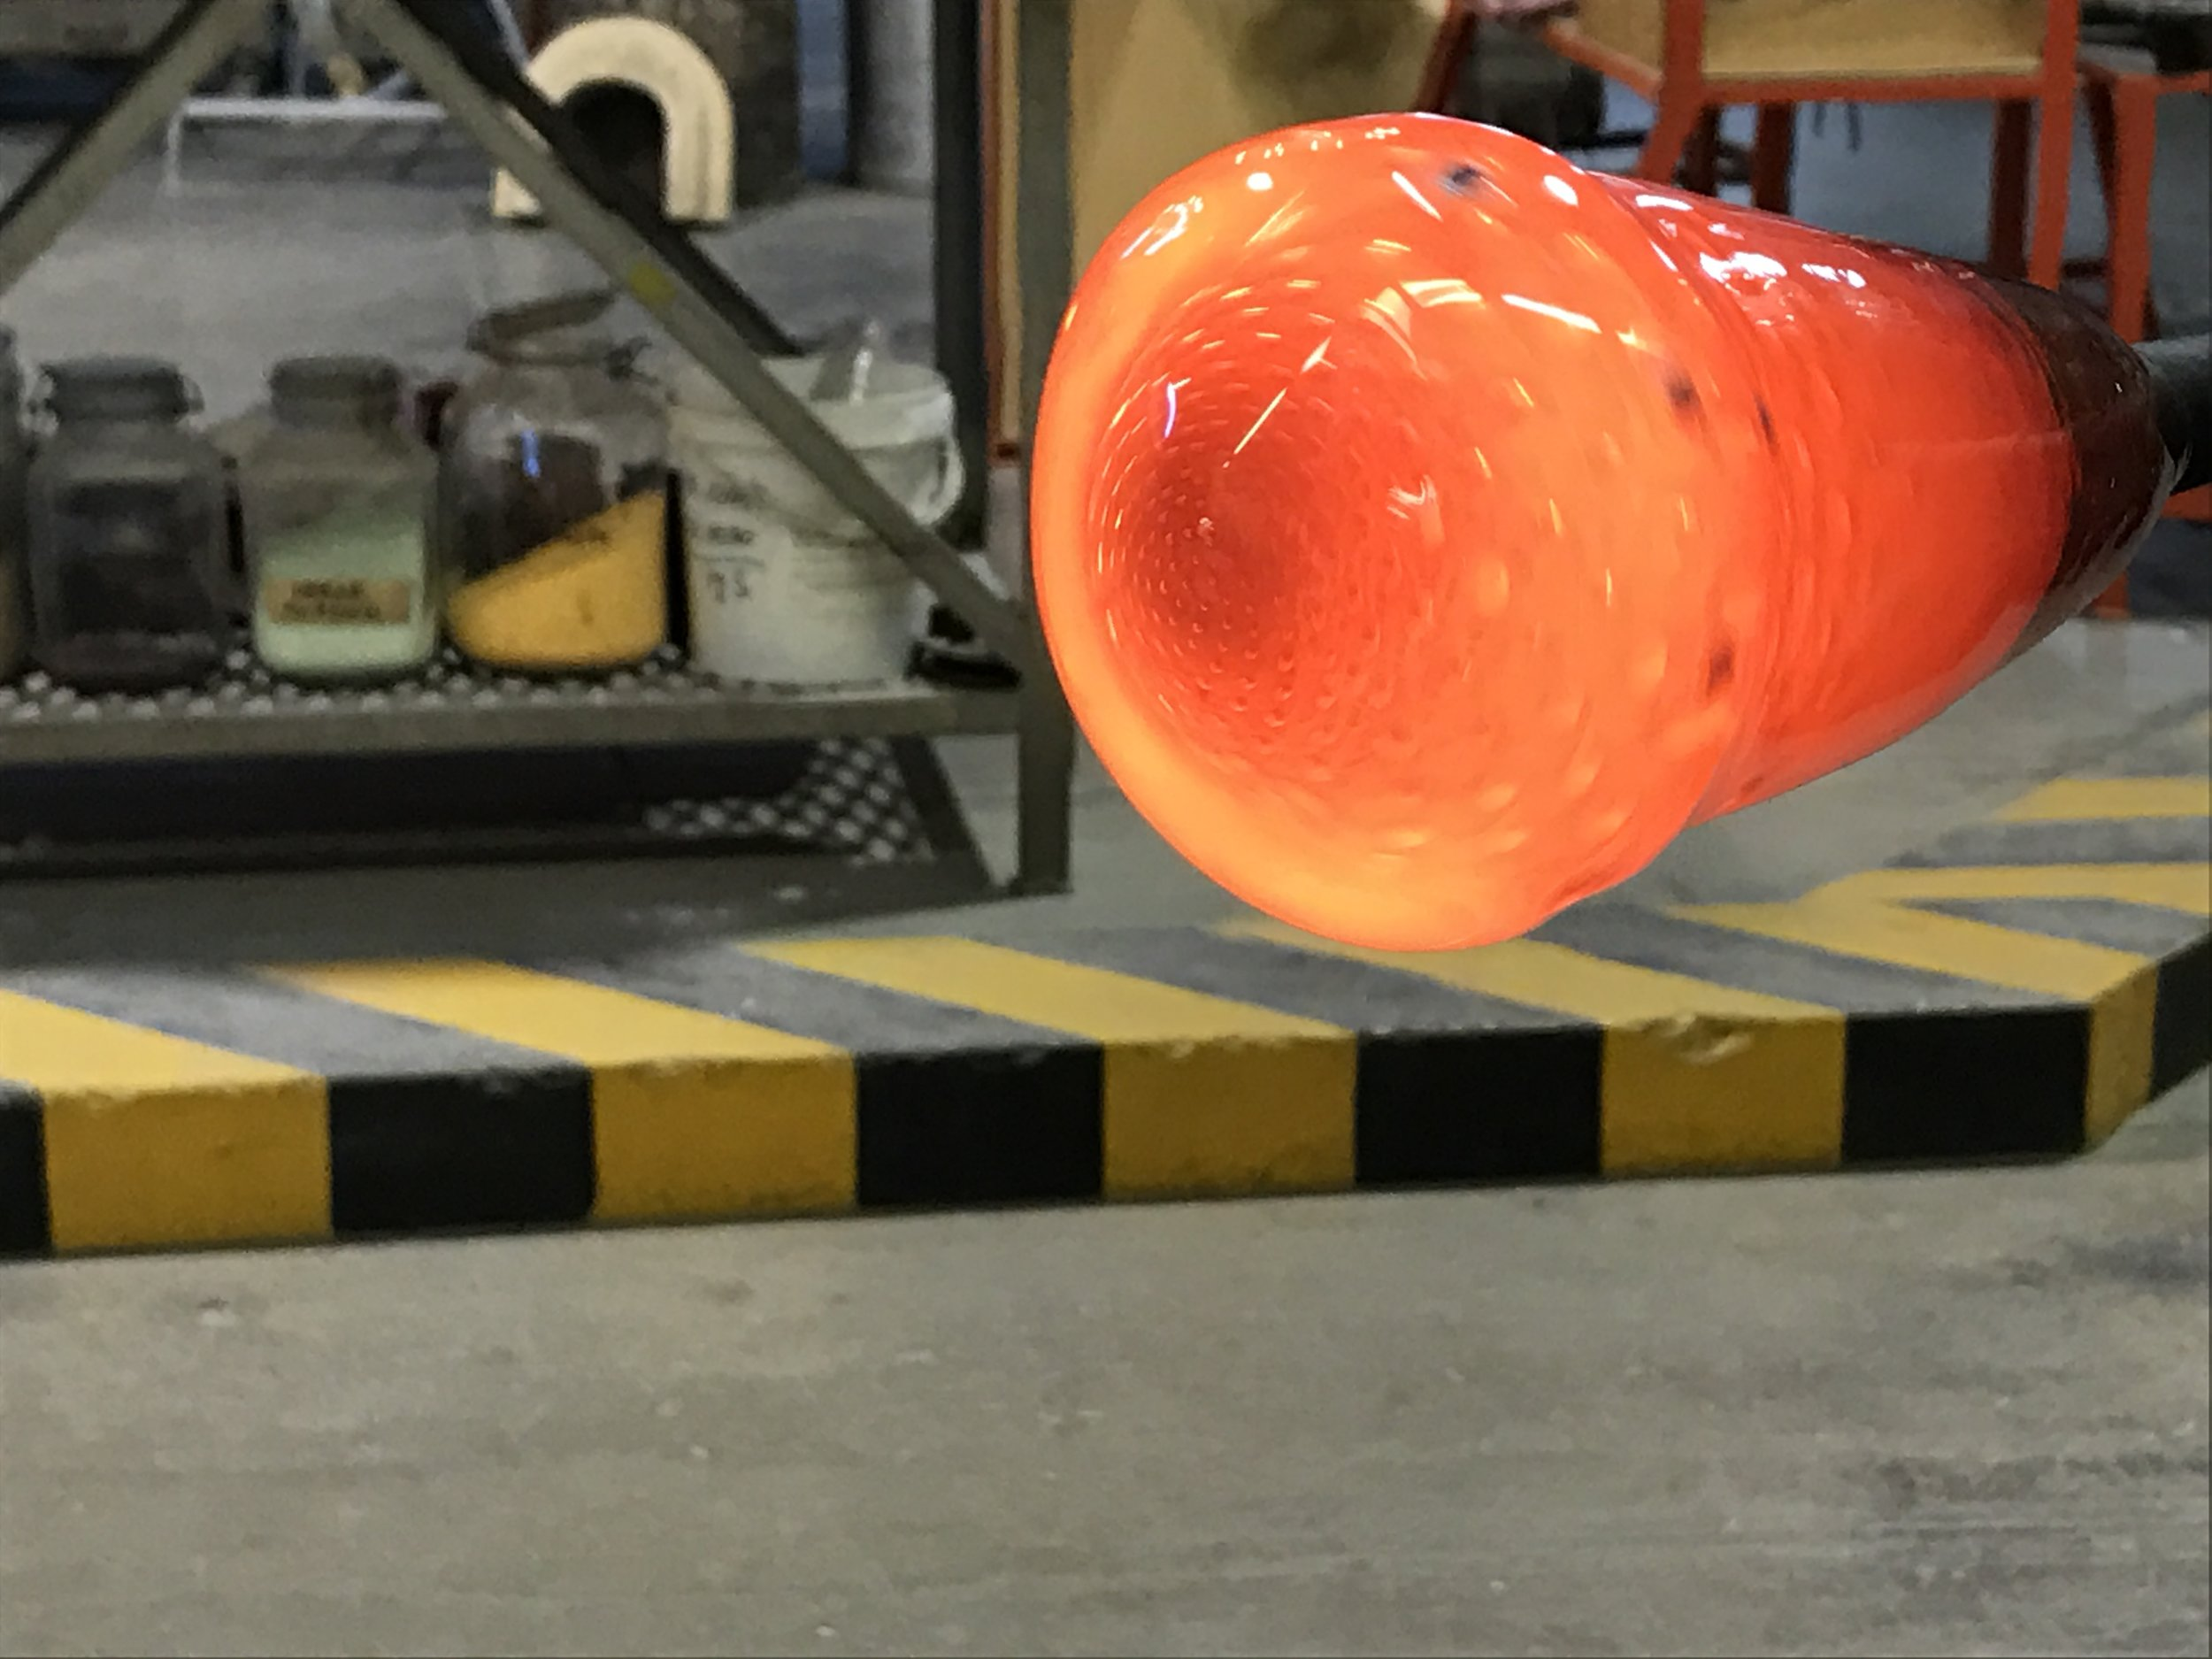 Very hot glass being made into a vase